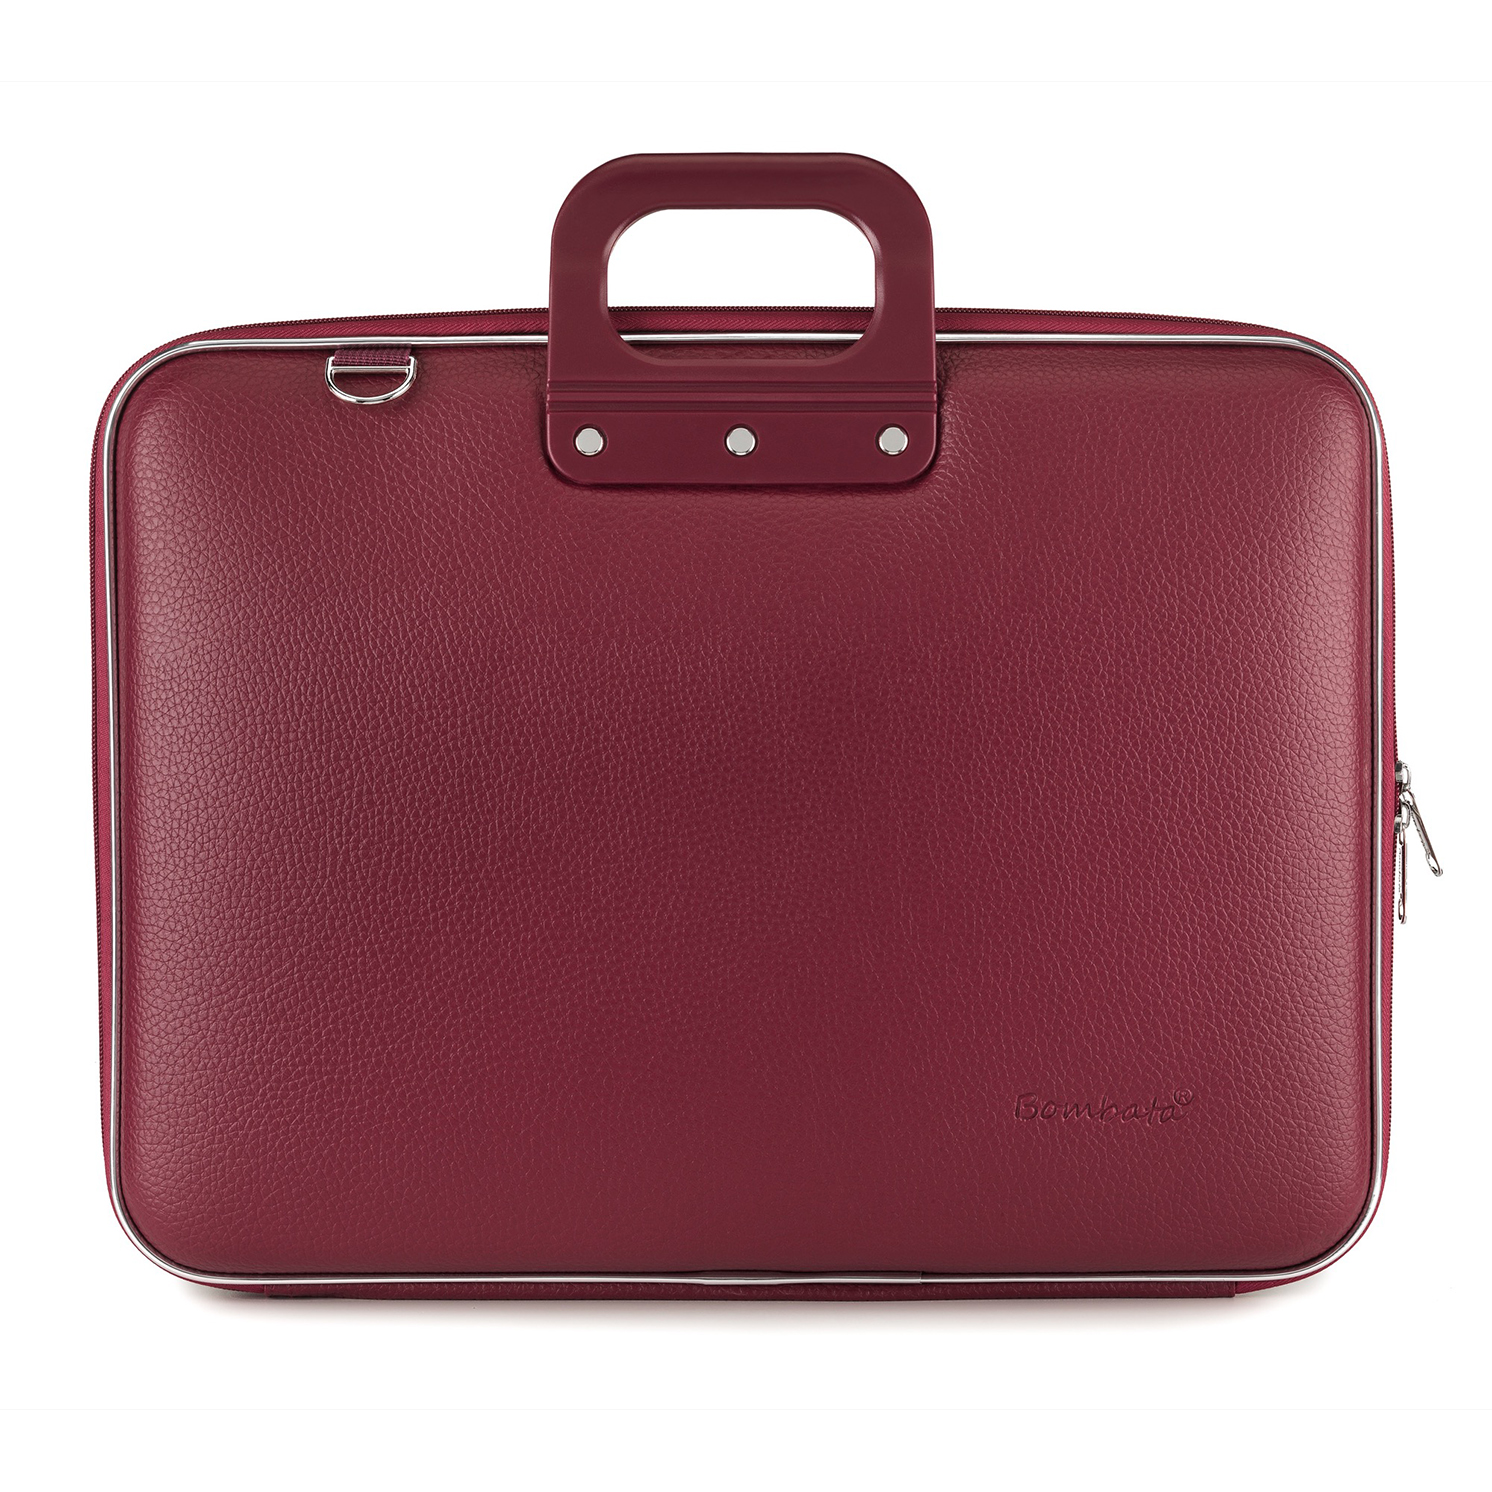 Bombata – Burgundy Red Maxi Classic 17″ Laptop Case/Bag with Shoulder Strap